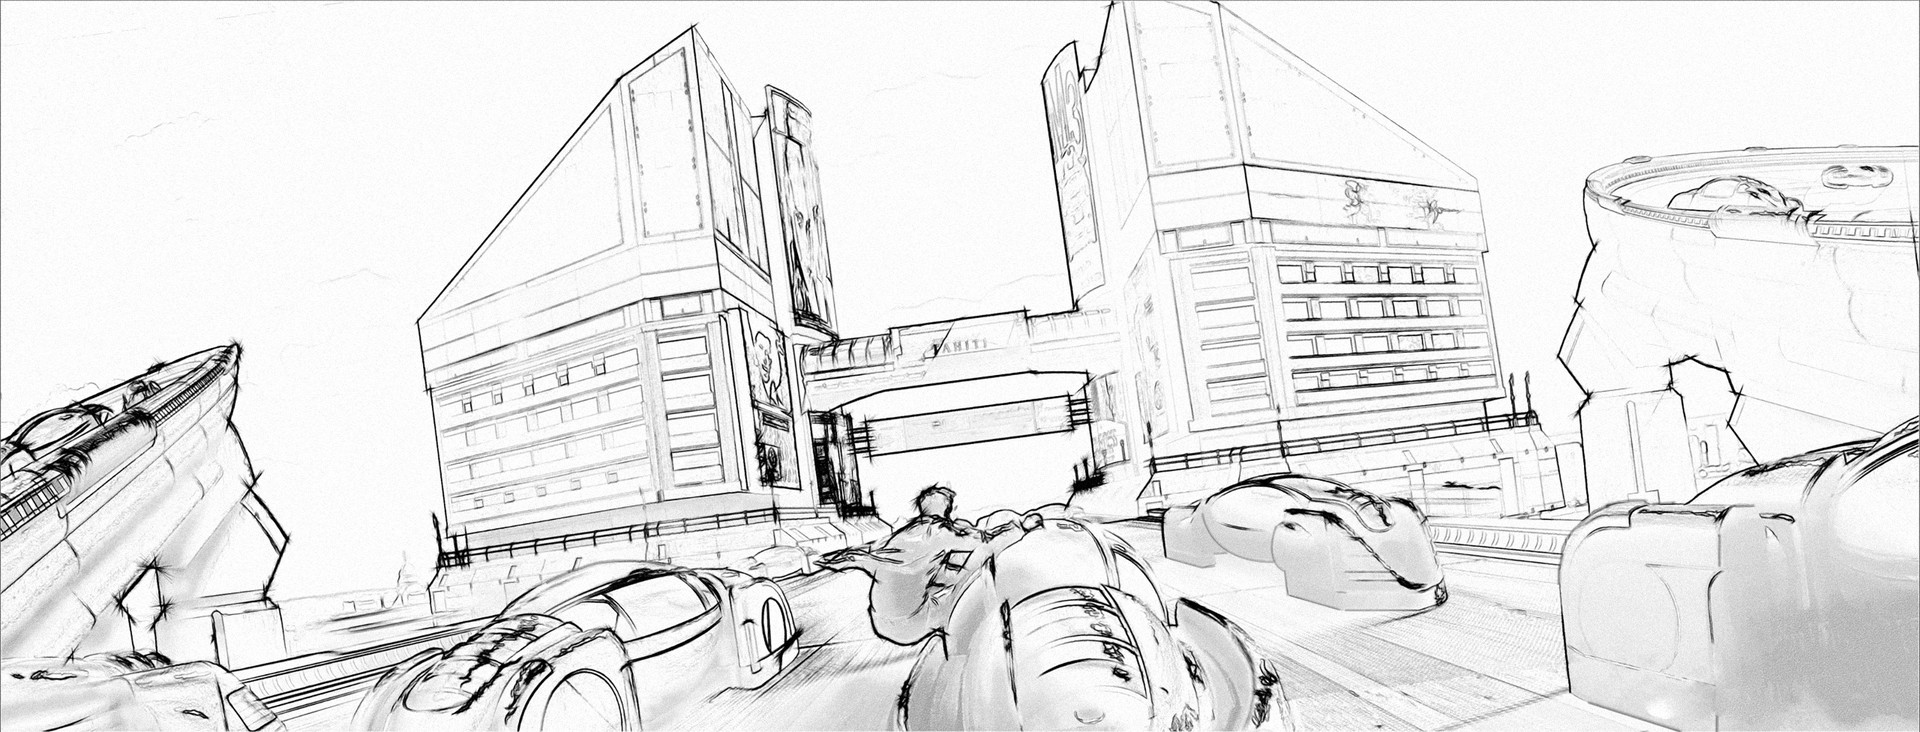 Aaron mcbride minority report underdrawing